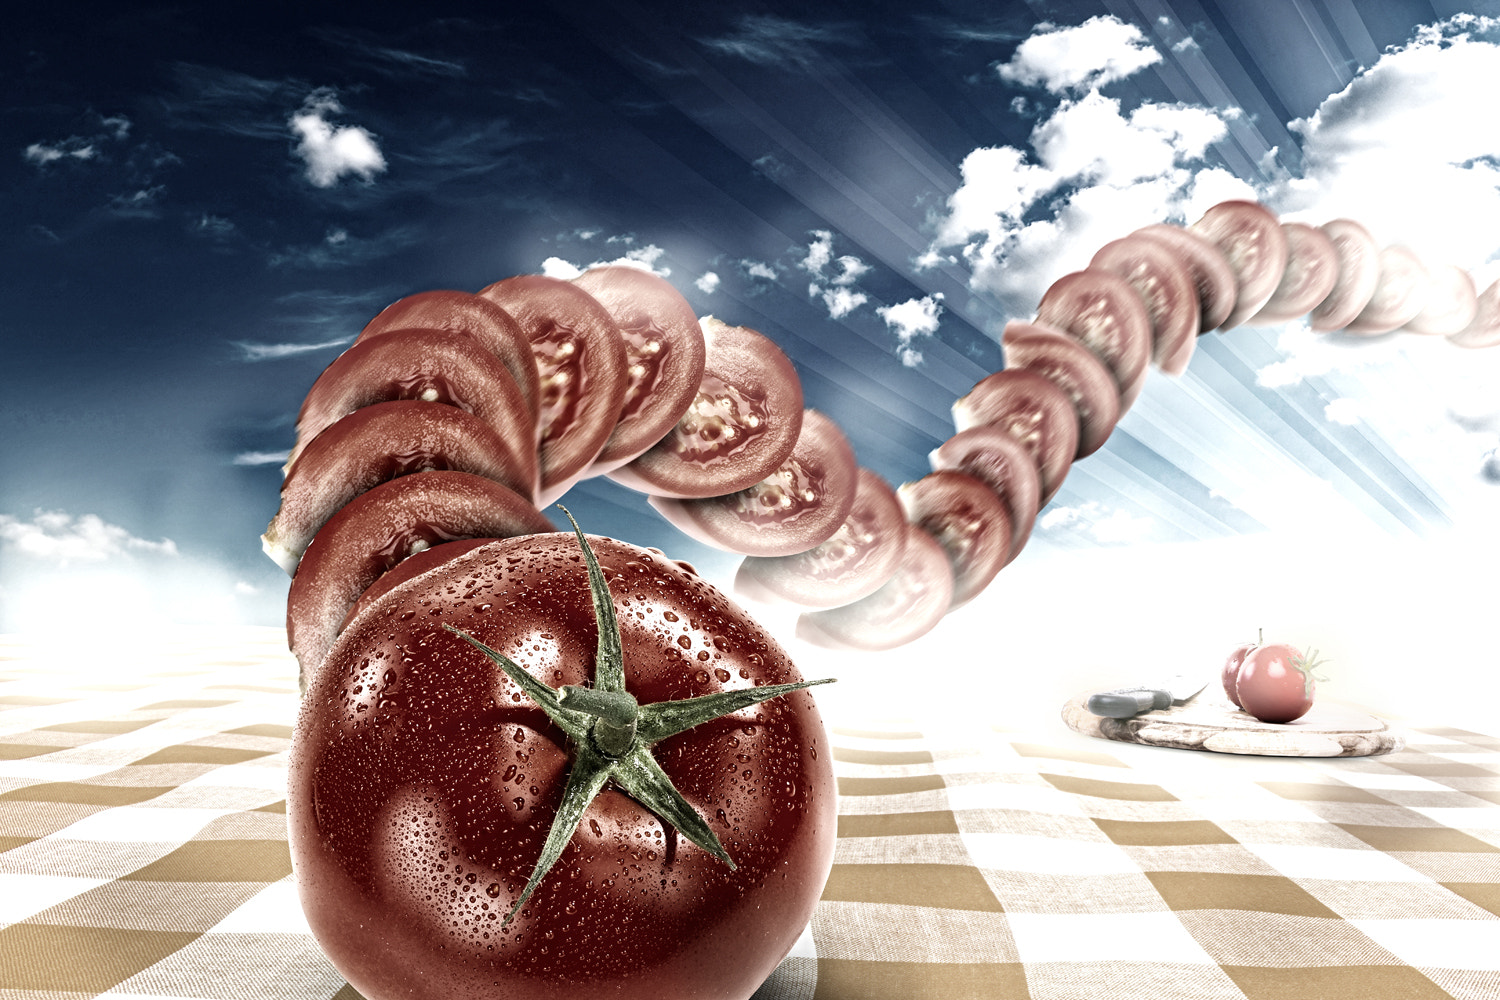 Photograph Dancing Food - Tomato by Markus Müller on 500px